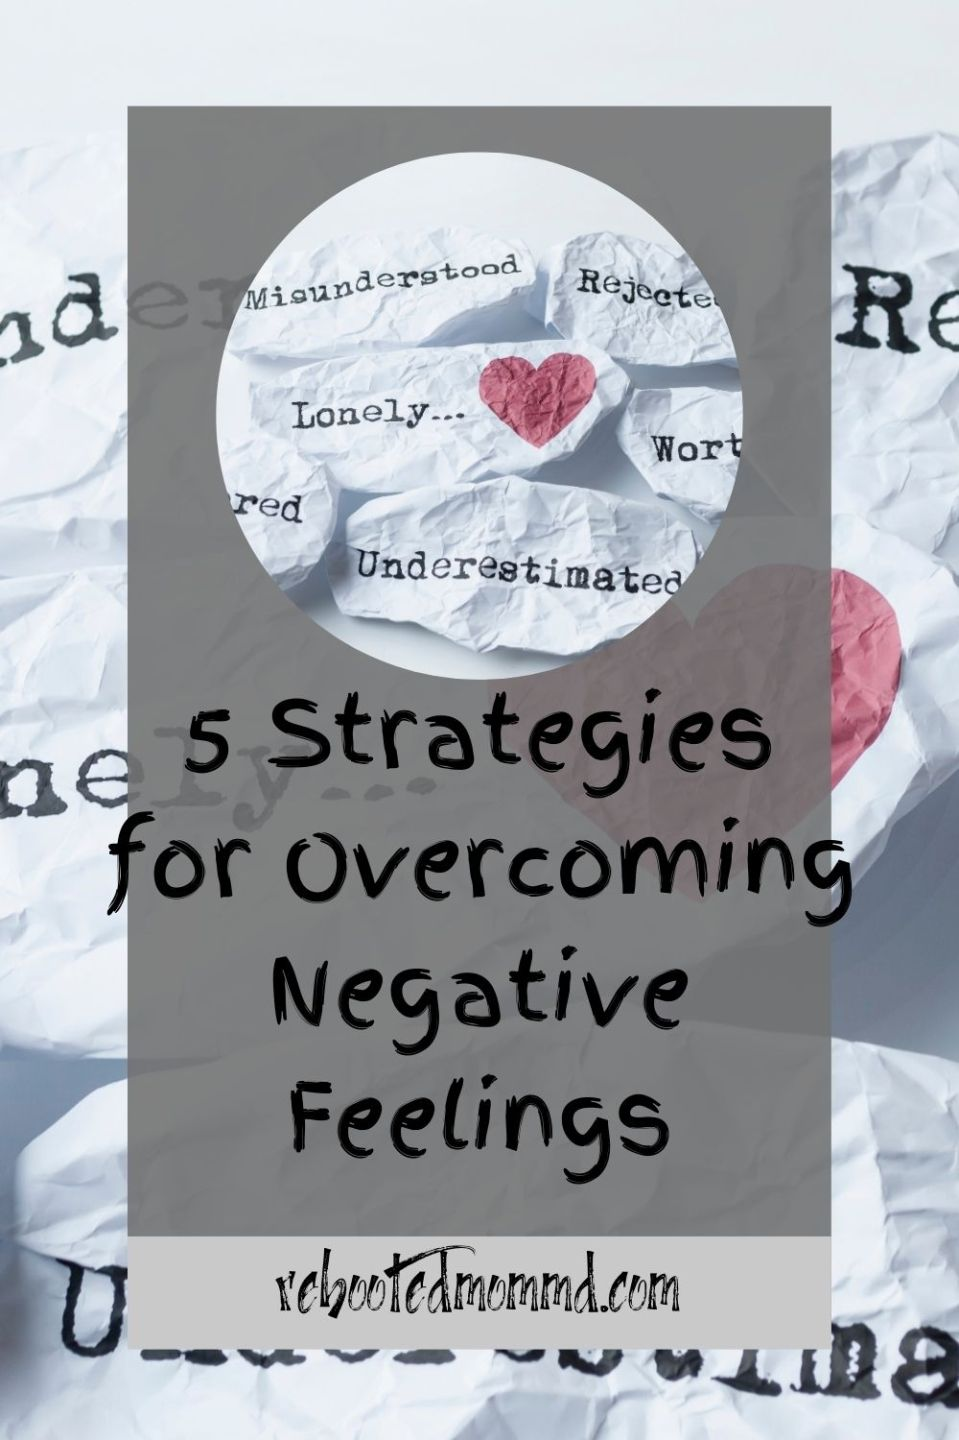 5 Strategies for Overcoming Negative Feelings